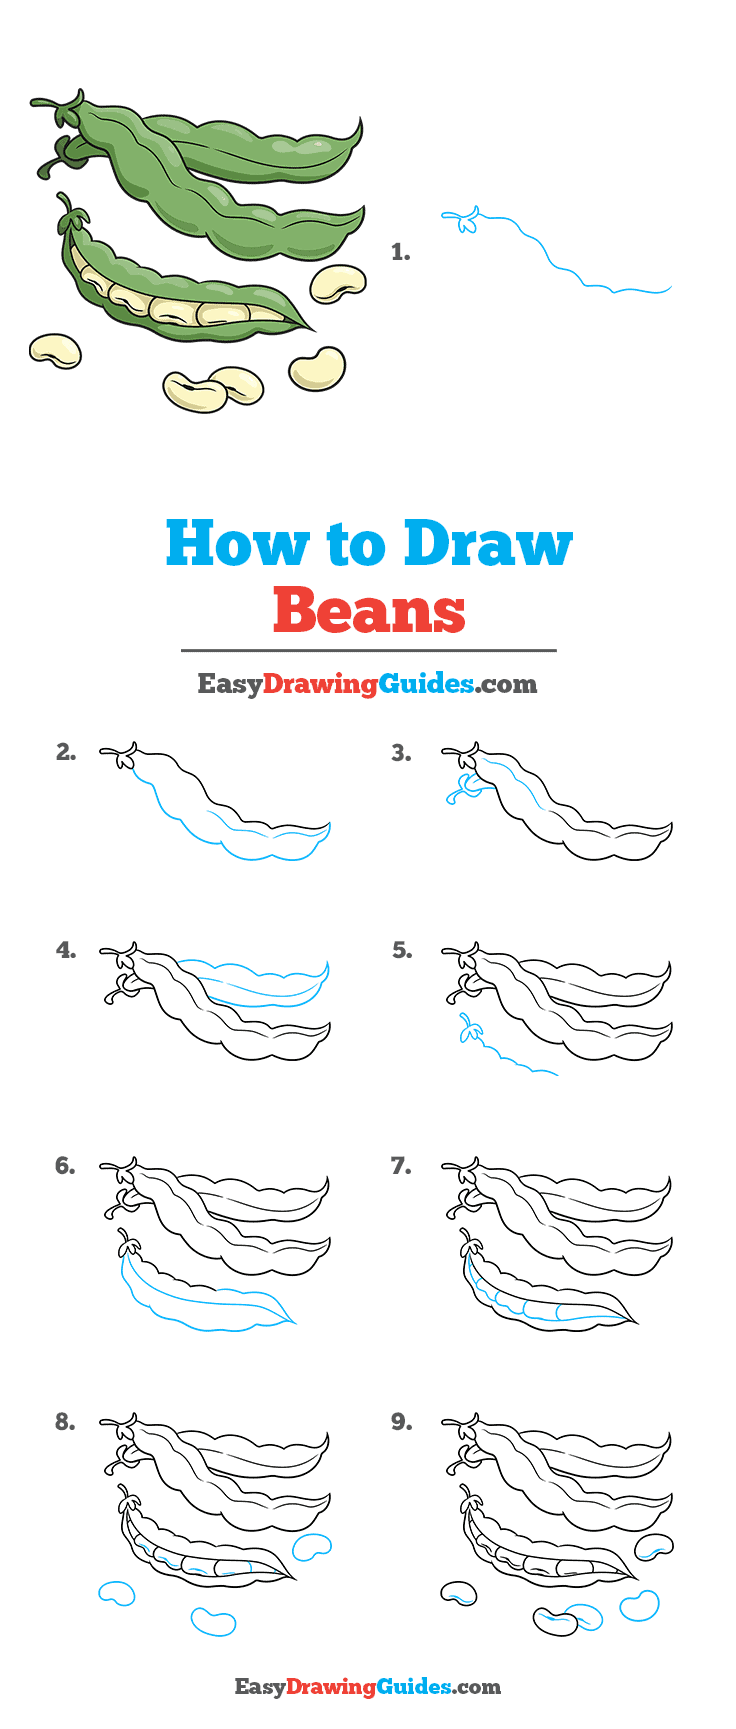 How to Draw Beans